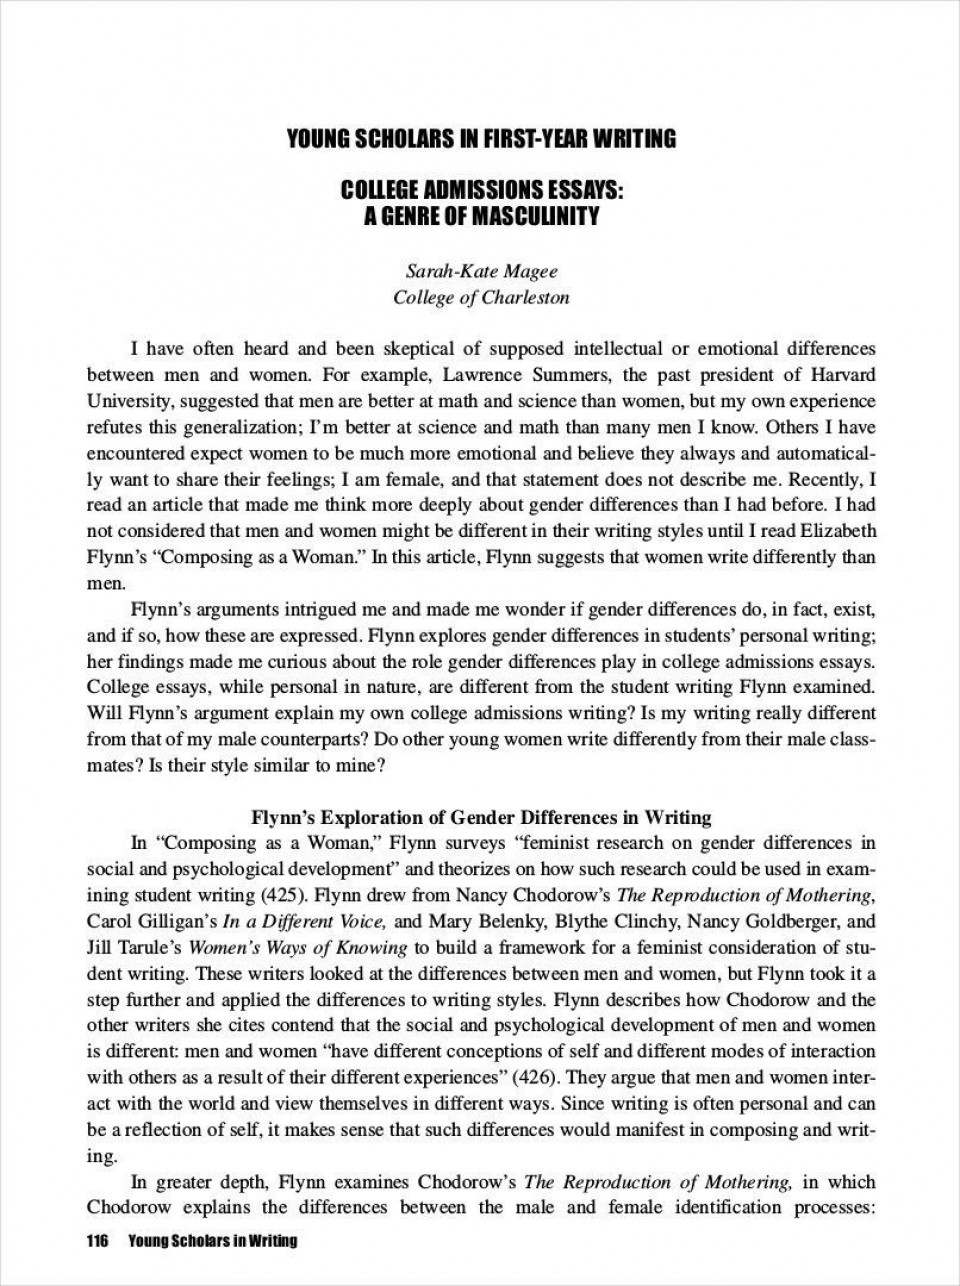 008 Unusual College Application Essay Outline Example Concept  Admission Format Heading Narrative Template960